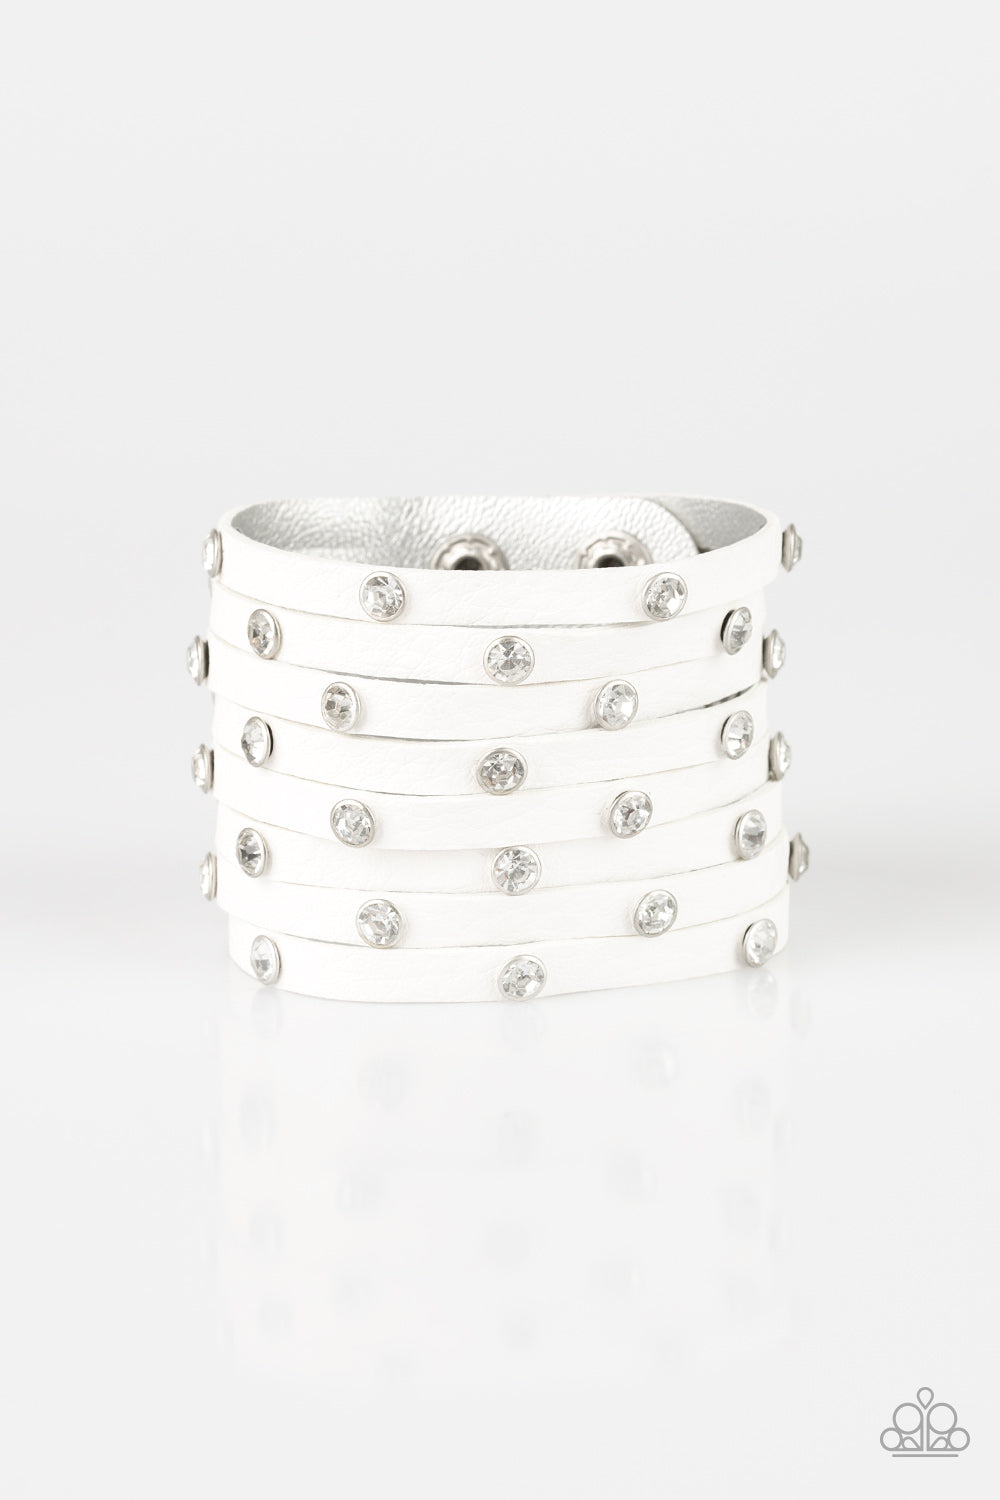 Paparazzi Accessories - Sass Squad - White Bracelet - JMJ Jewelry Collection